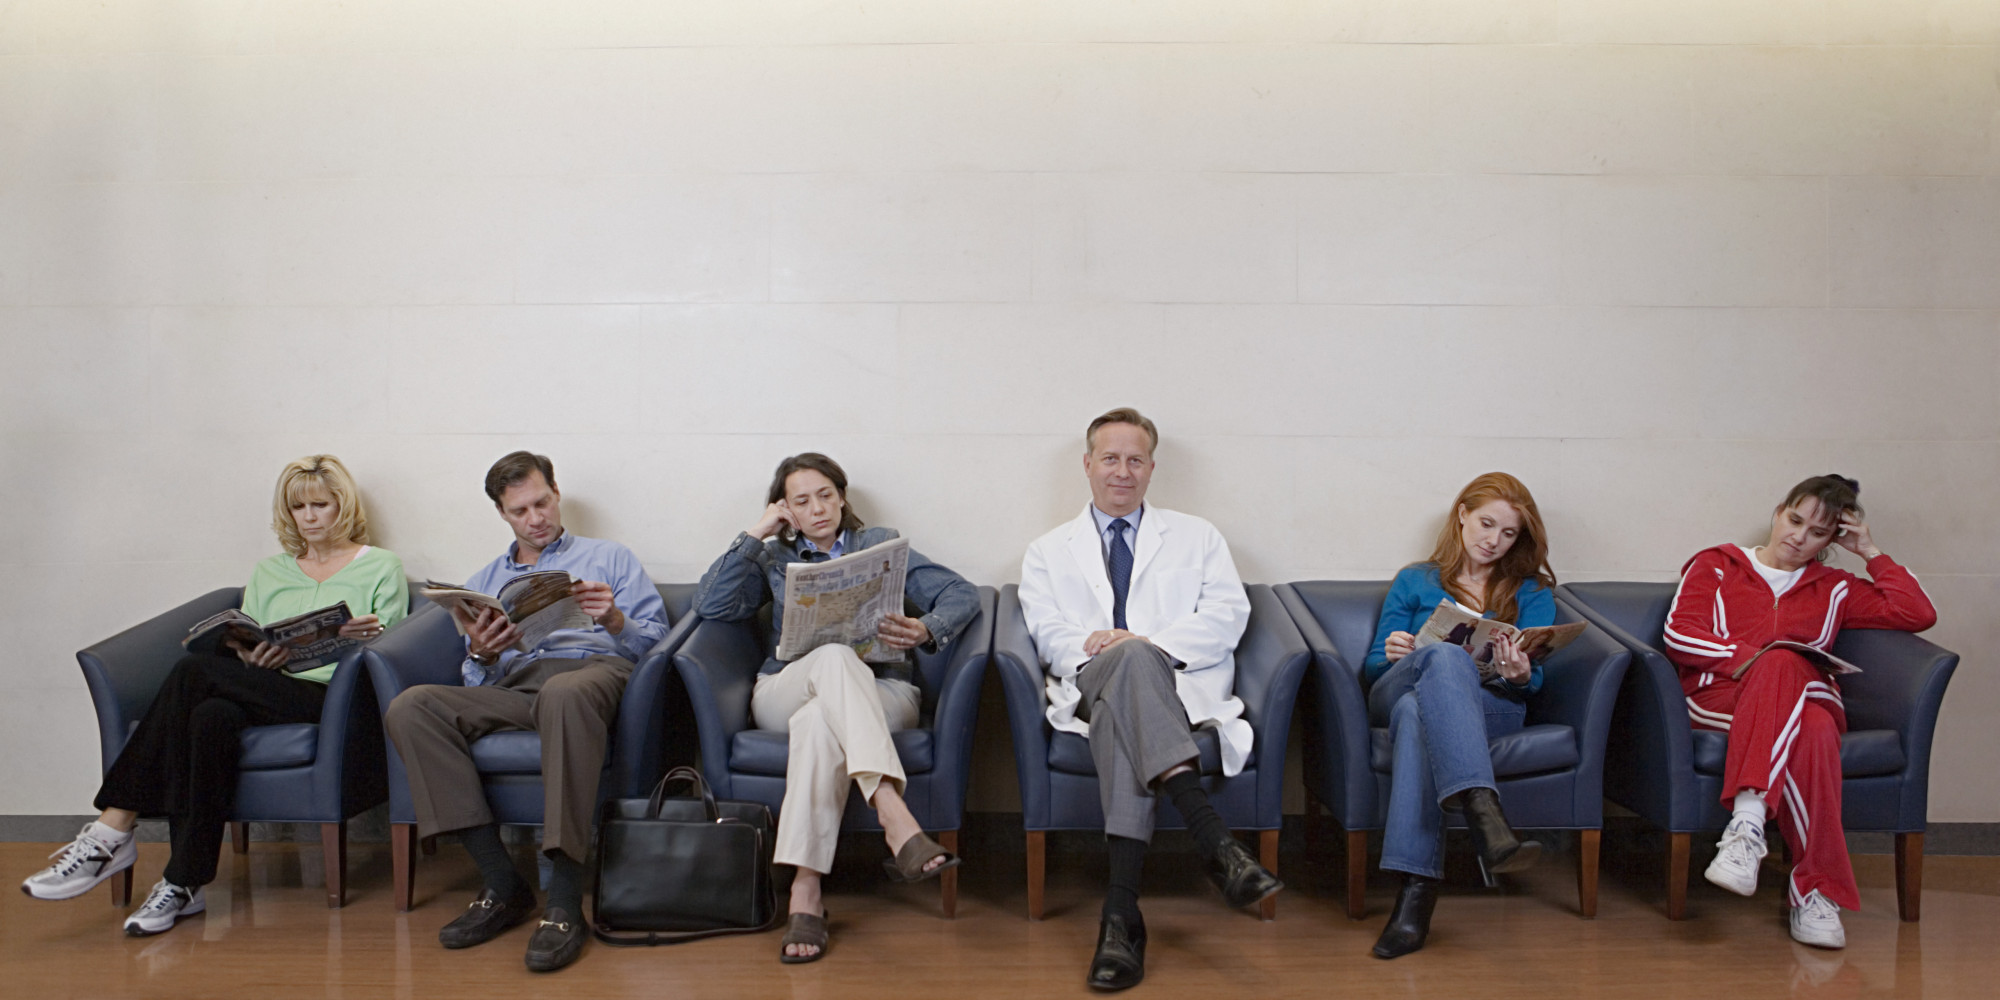 8 Ways To Cut Your Wait Time At The Doctor's Office | HuffPost